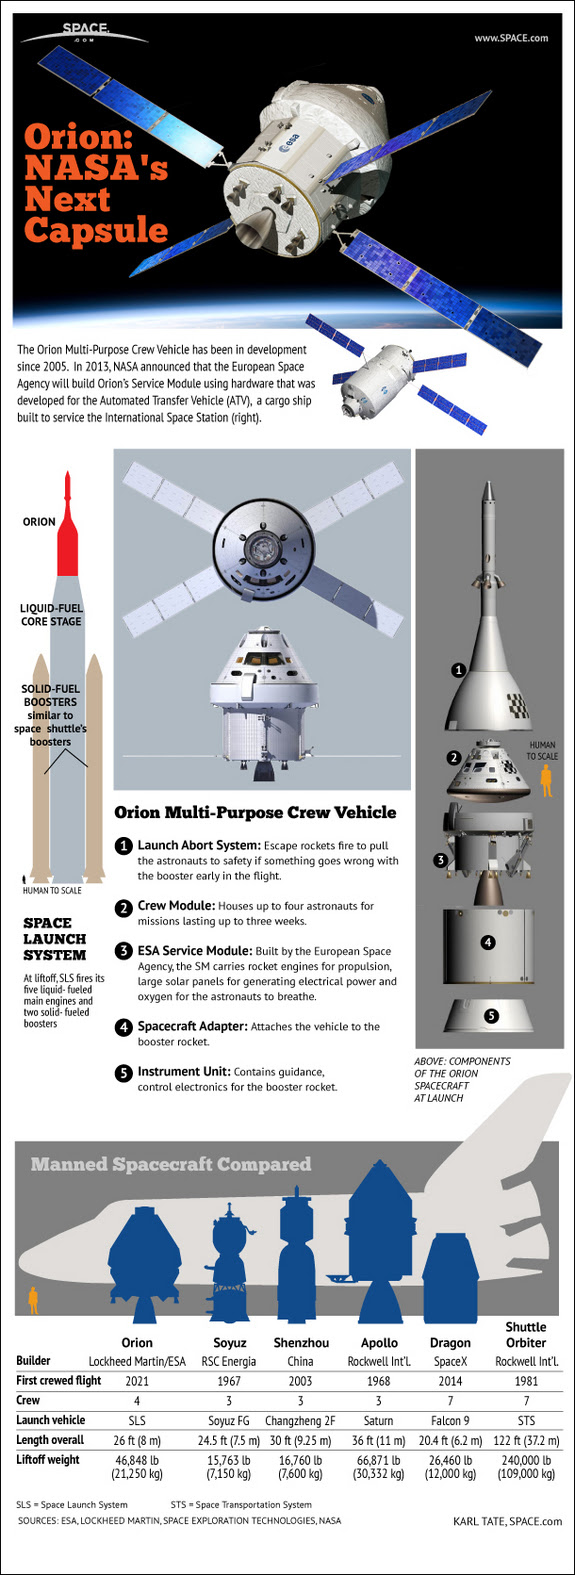 Find out the details of NASA's new Orion 4-person crew capsule, in this SPACE.com infographic.